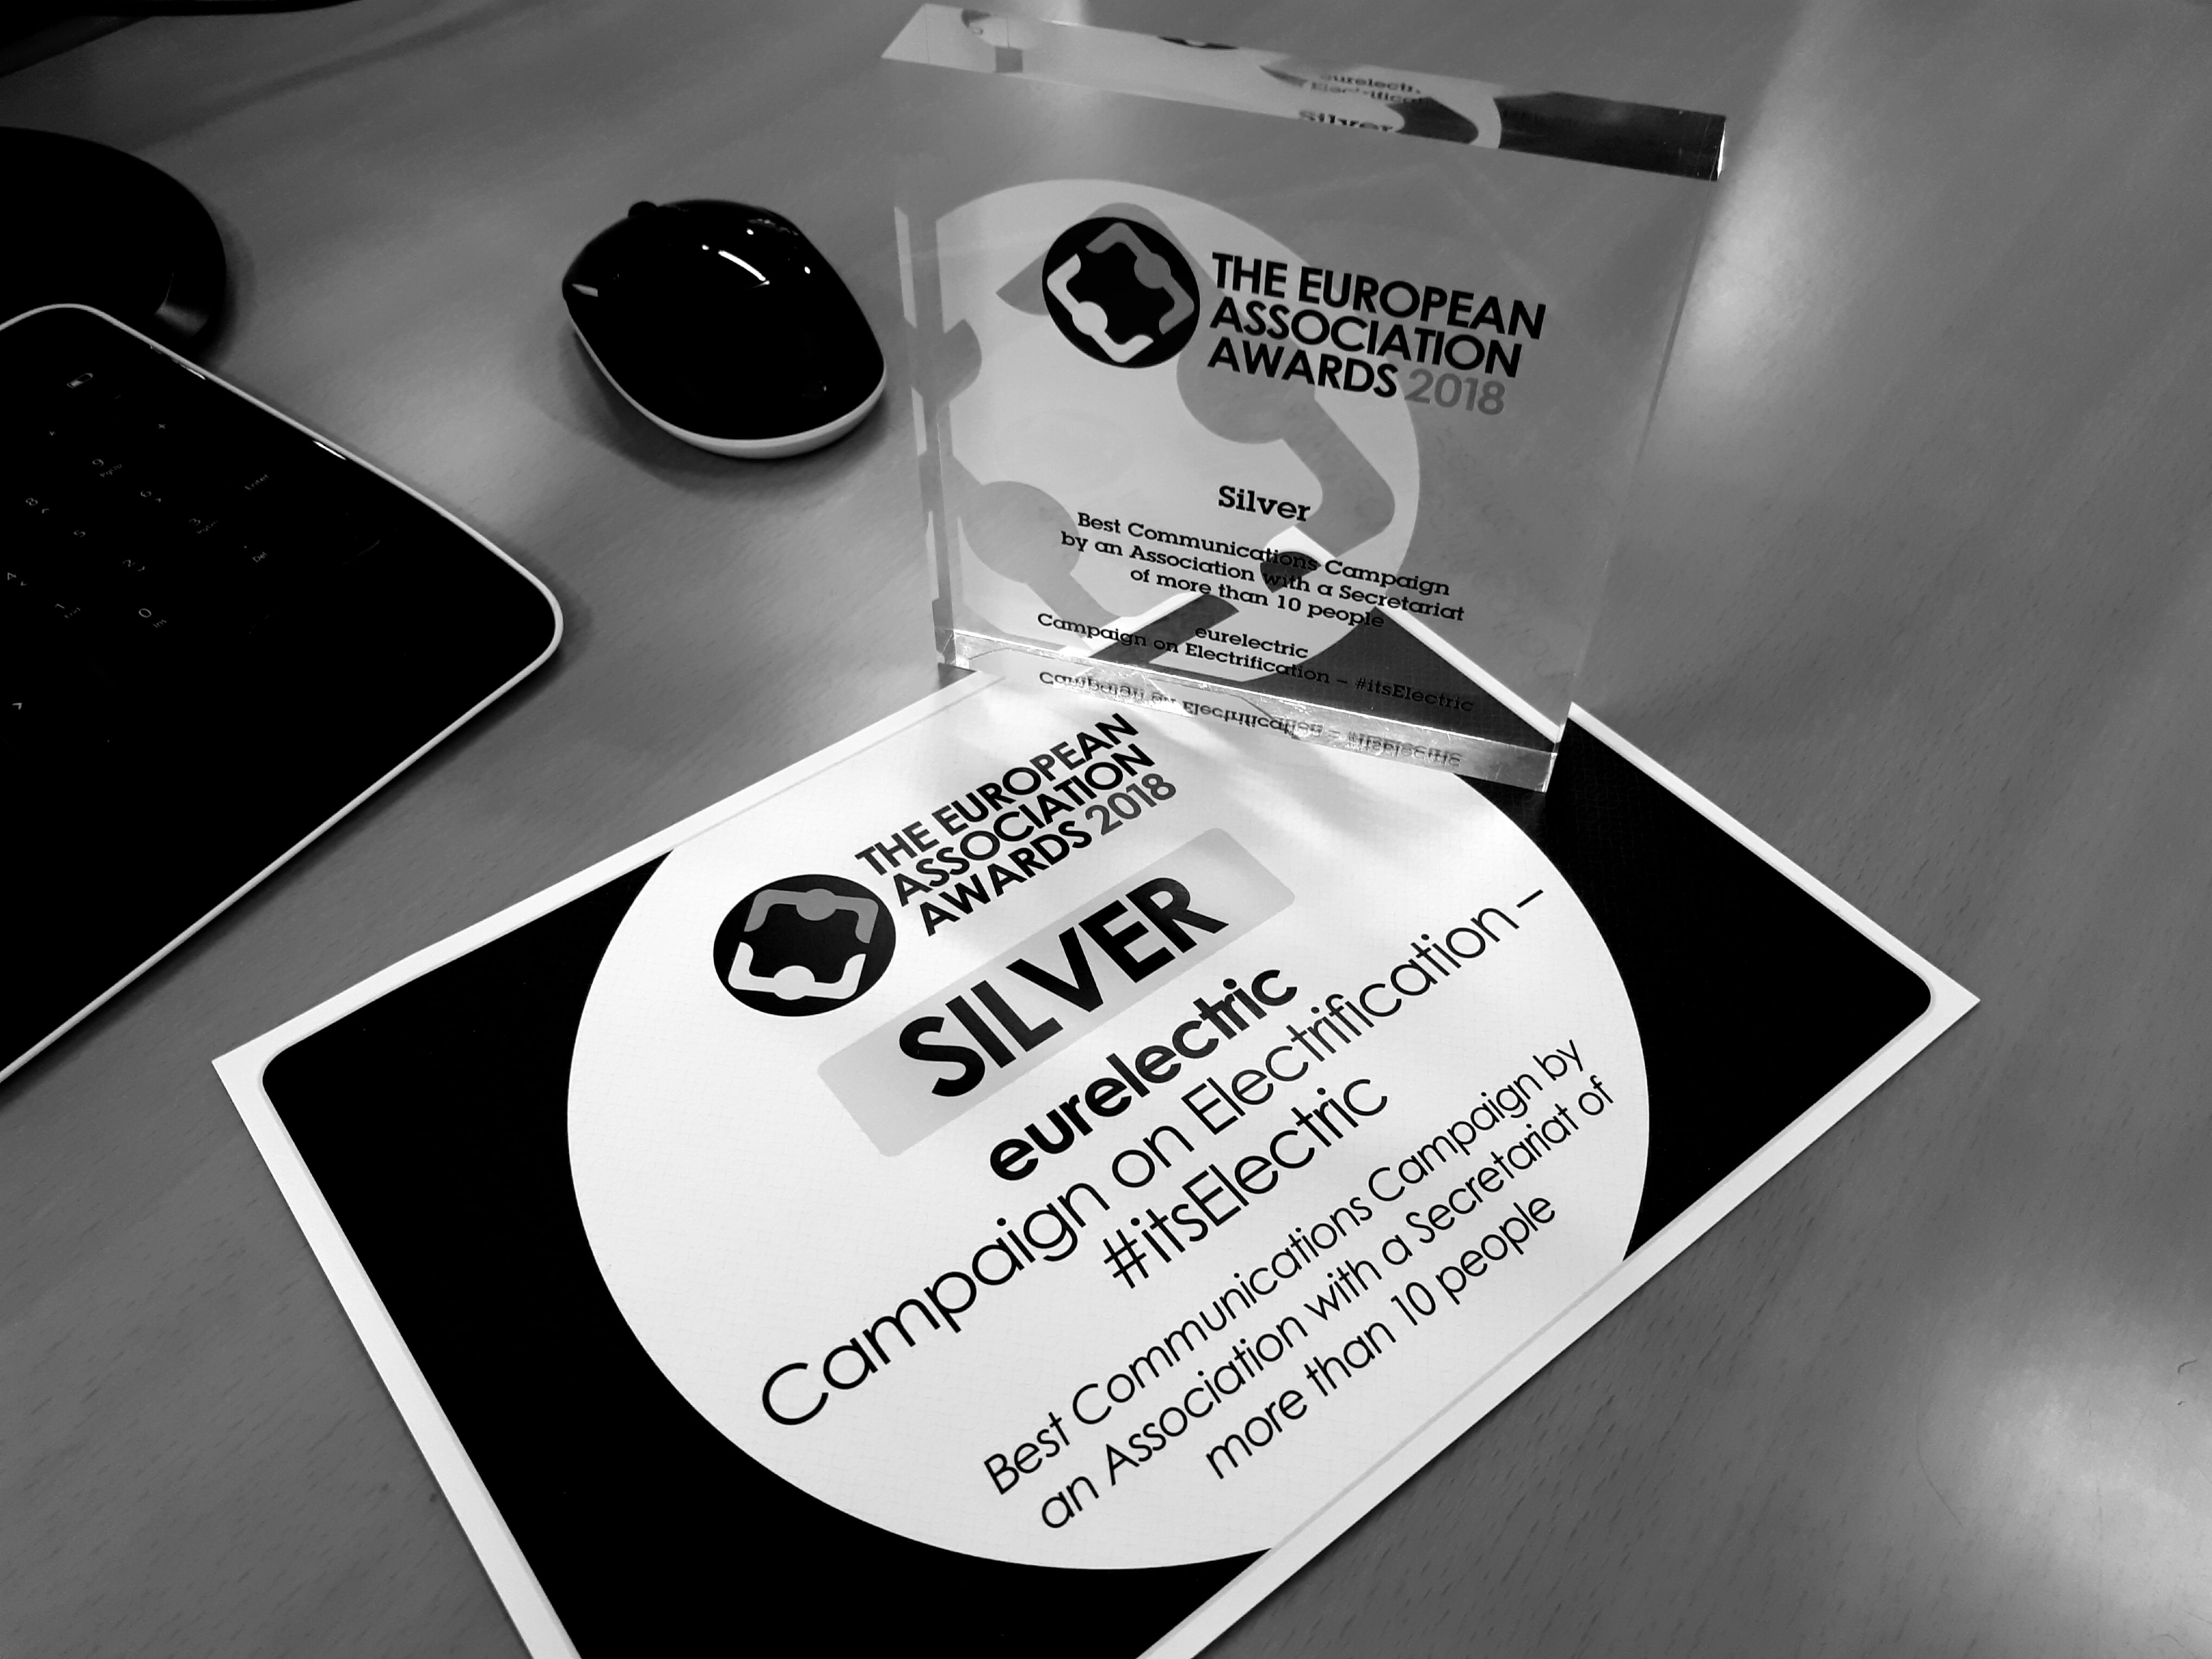 #itsElectric wins Silver Award